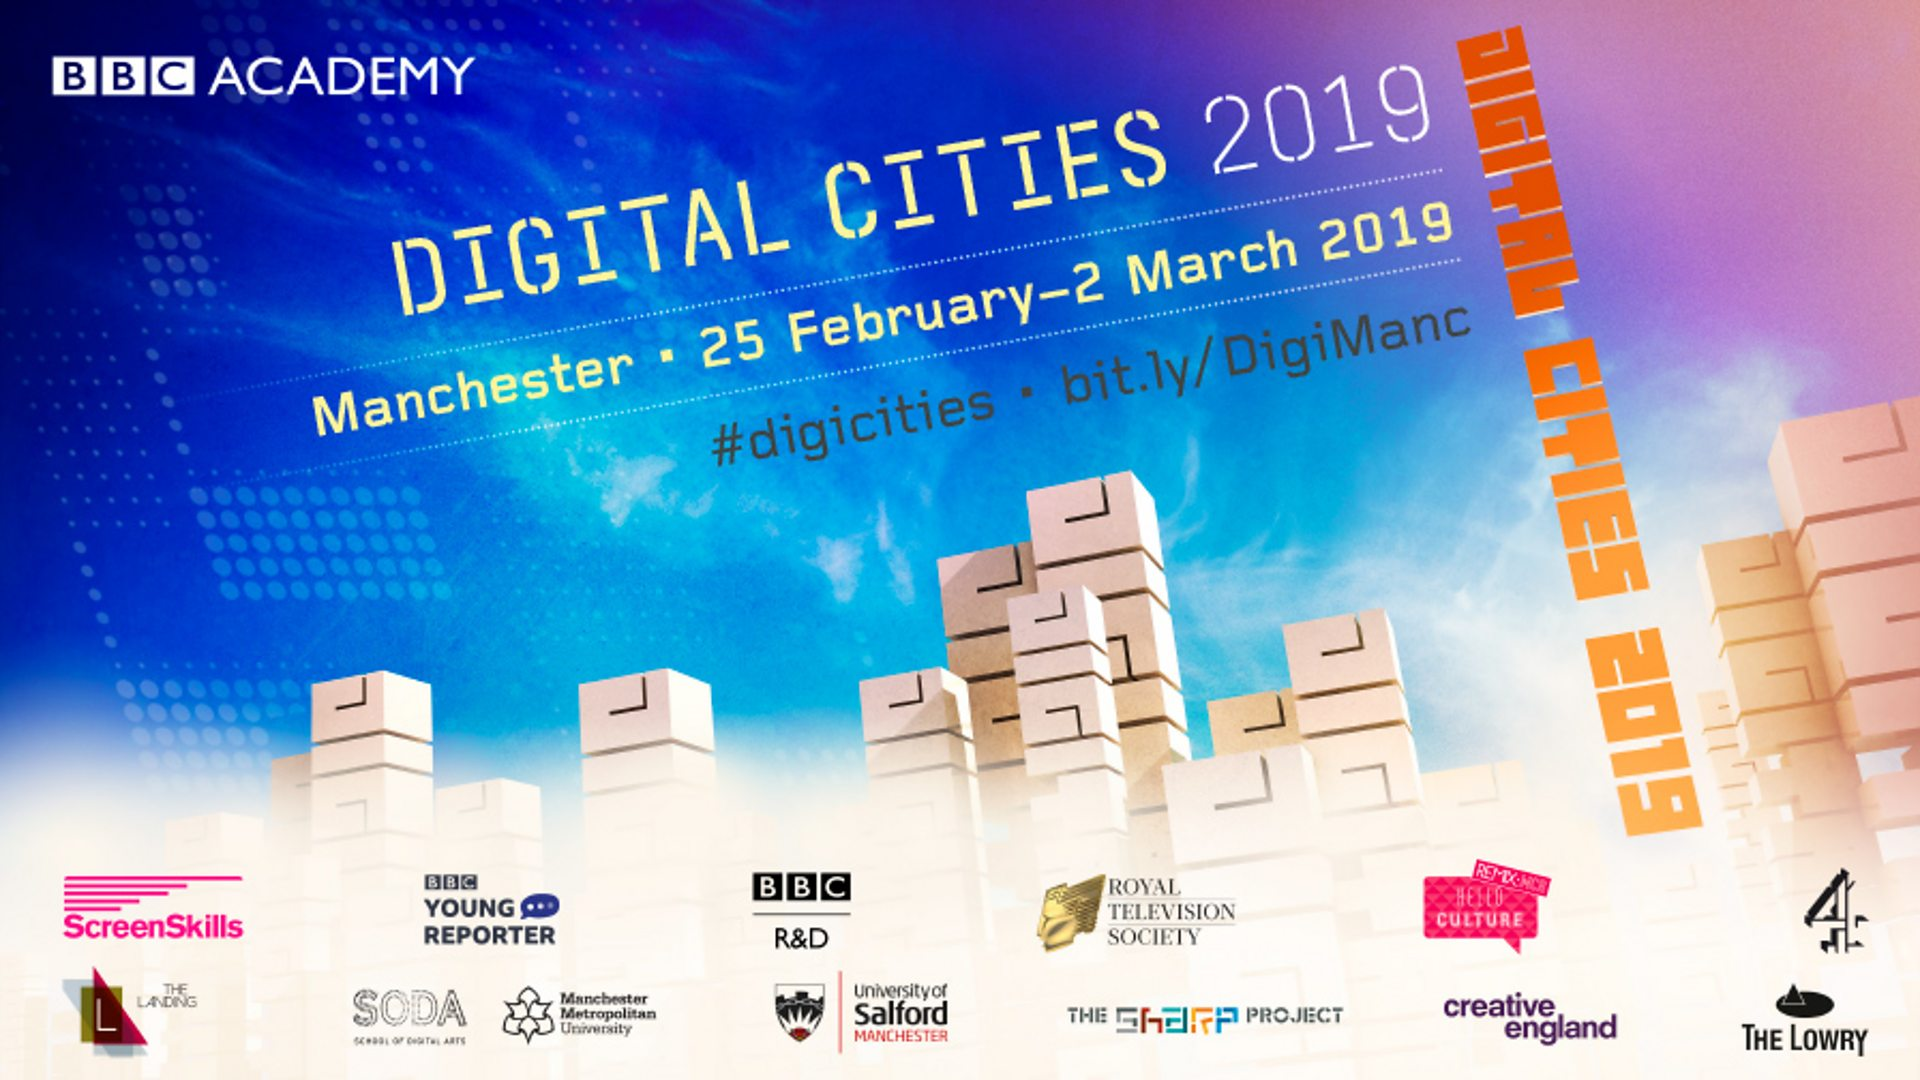 Digital Cities Manchester: 25 February to 2 March 2019 - BBC Academy